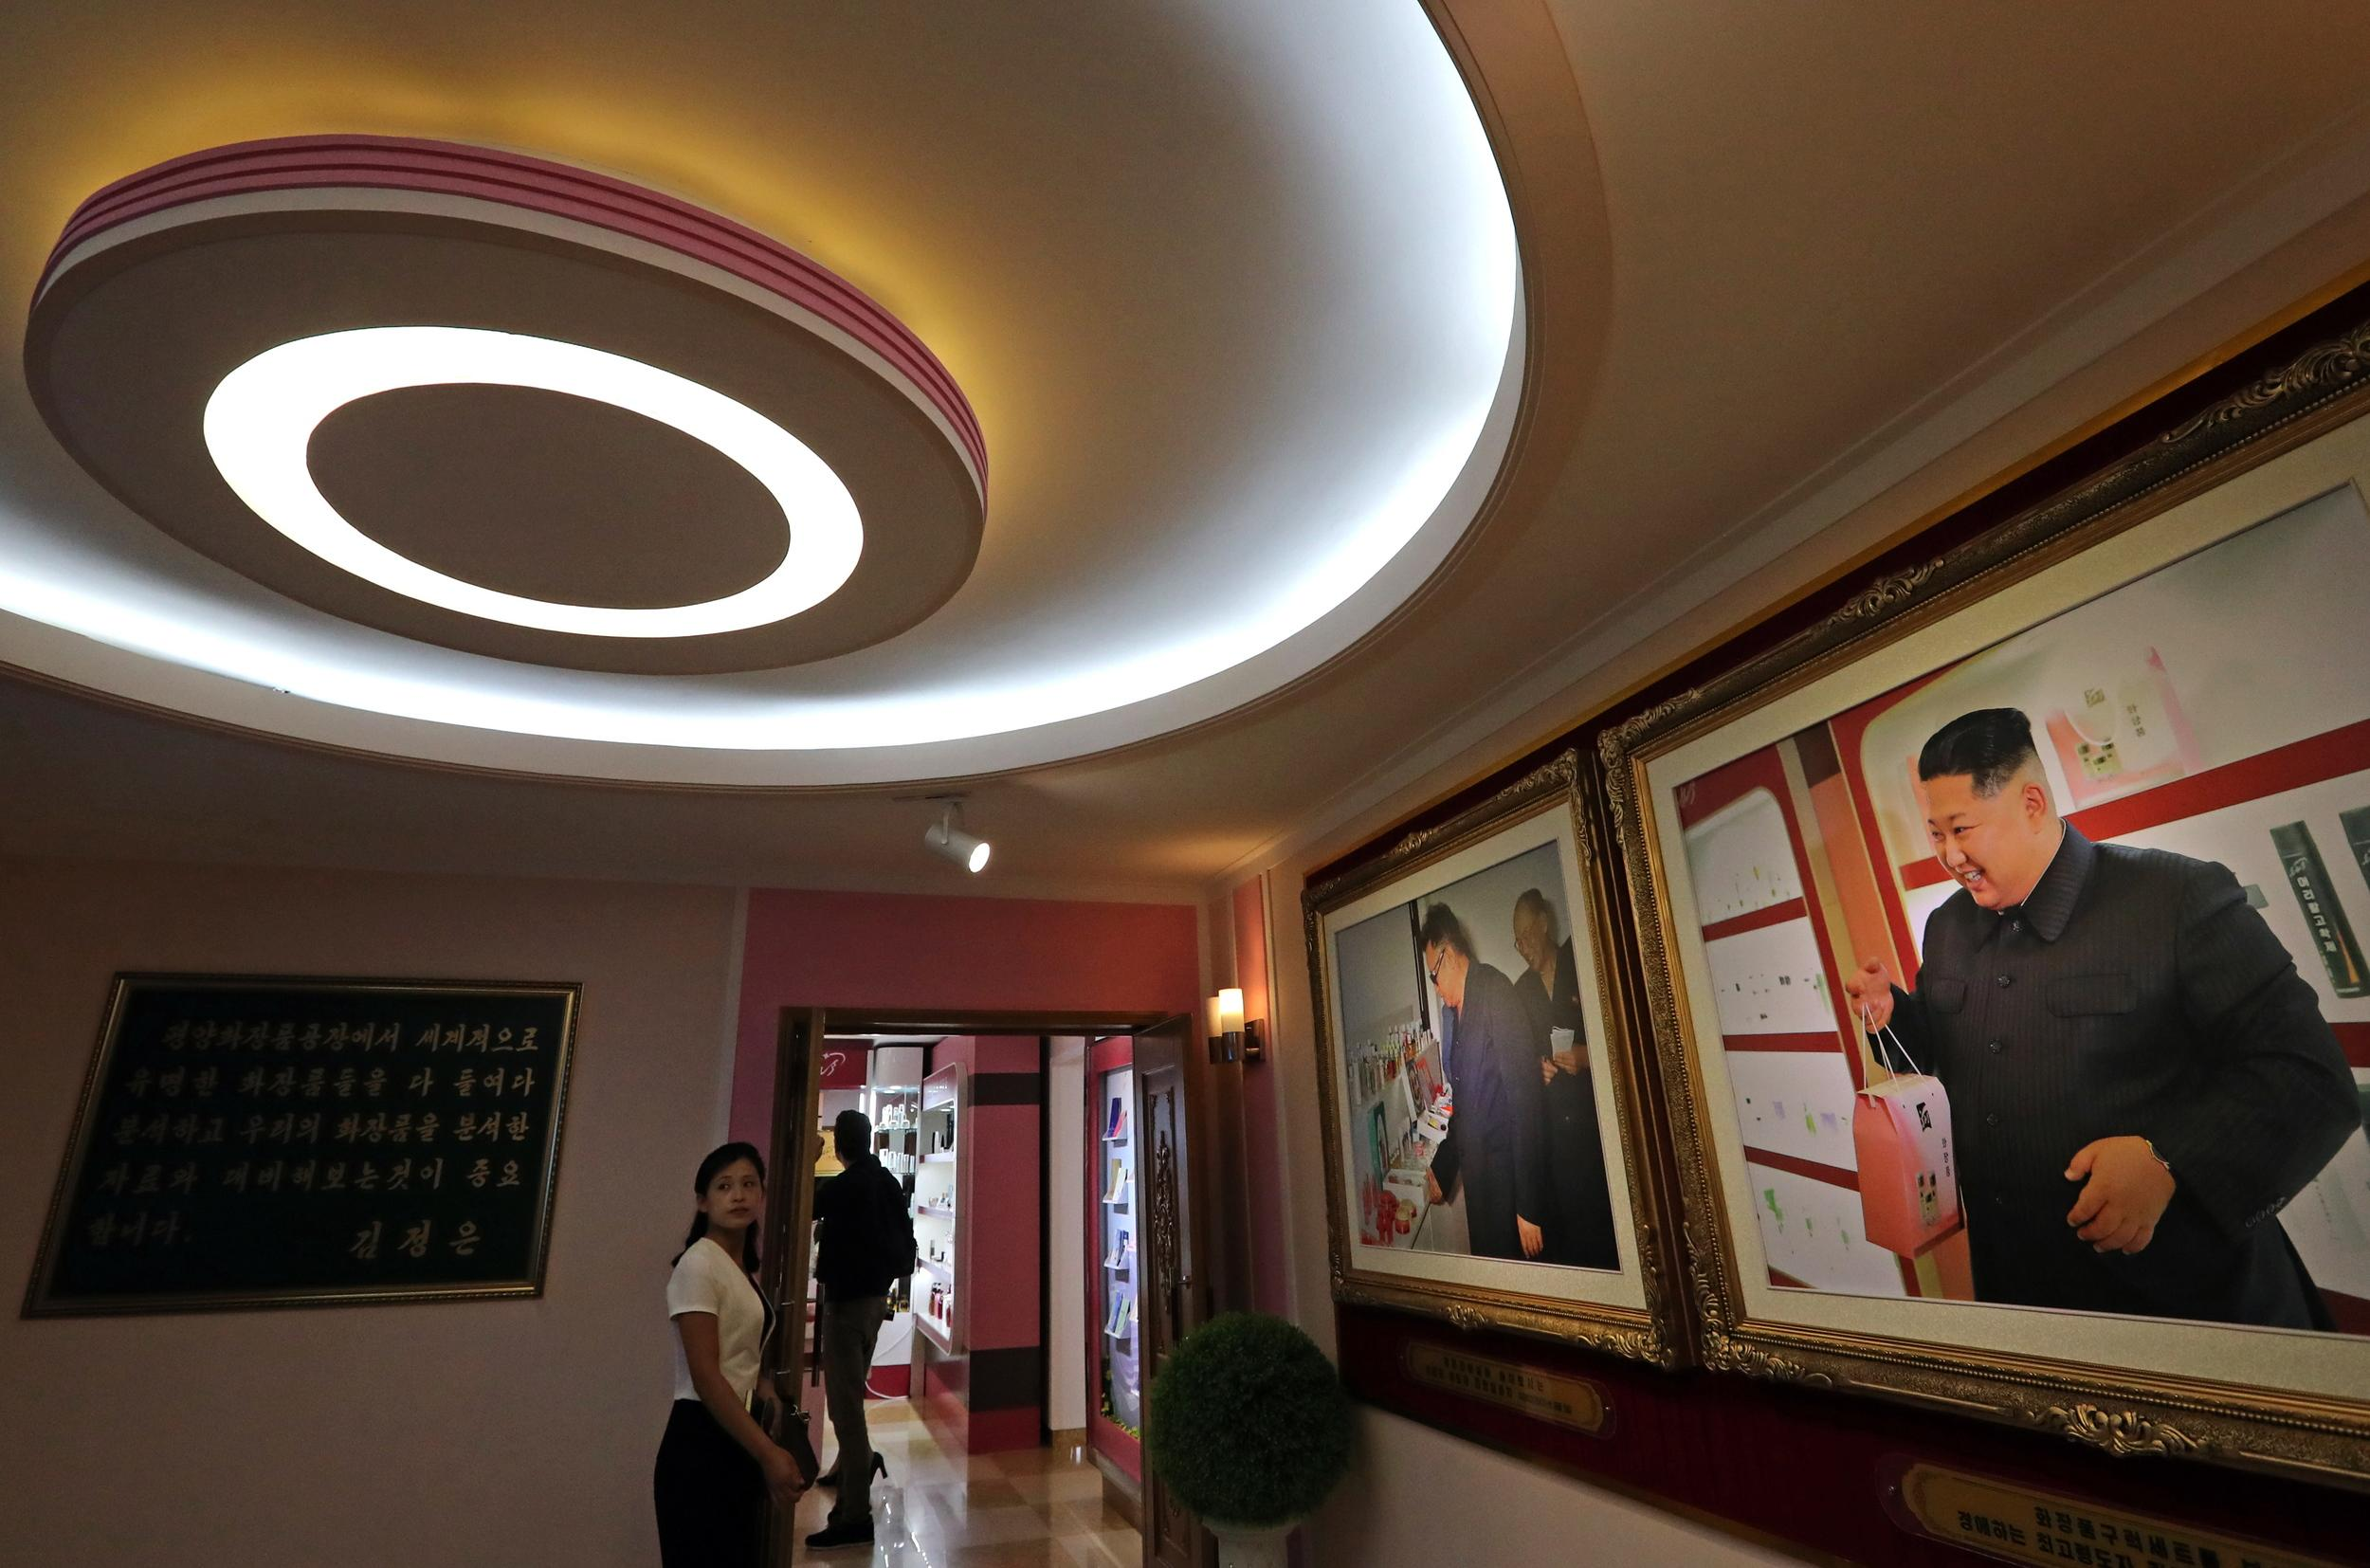 PYONGYANG, NORTH KOREA - SEPTEMBER 7, 2018: A photograph of North Korea's Supreme Leader Kim Jong-un on display at the entrance to a cosmetics factory in Pyongyang. Alexander Demianchuk/TASS (Photo by Alexander Demianchuk\TASS via Getty Images)